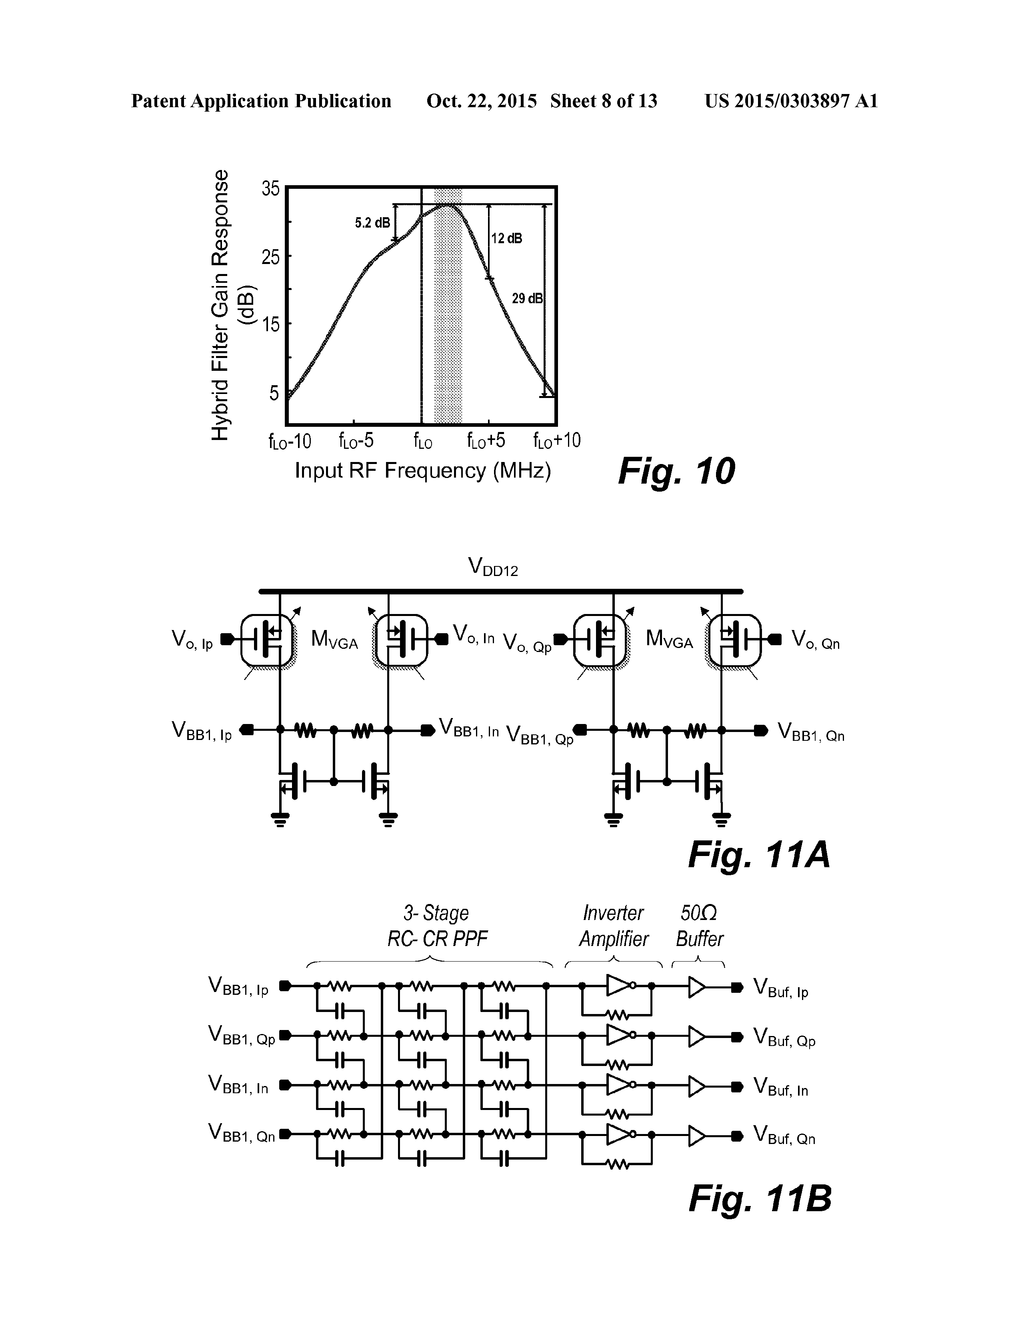 If Noise Shaping Transistorized Current Mode Lowpass Filter Low Pass Rc Diagram Utilizing Cross Coupled Transistors Schematic And Image 09